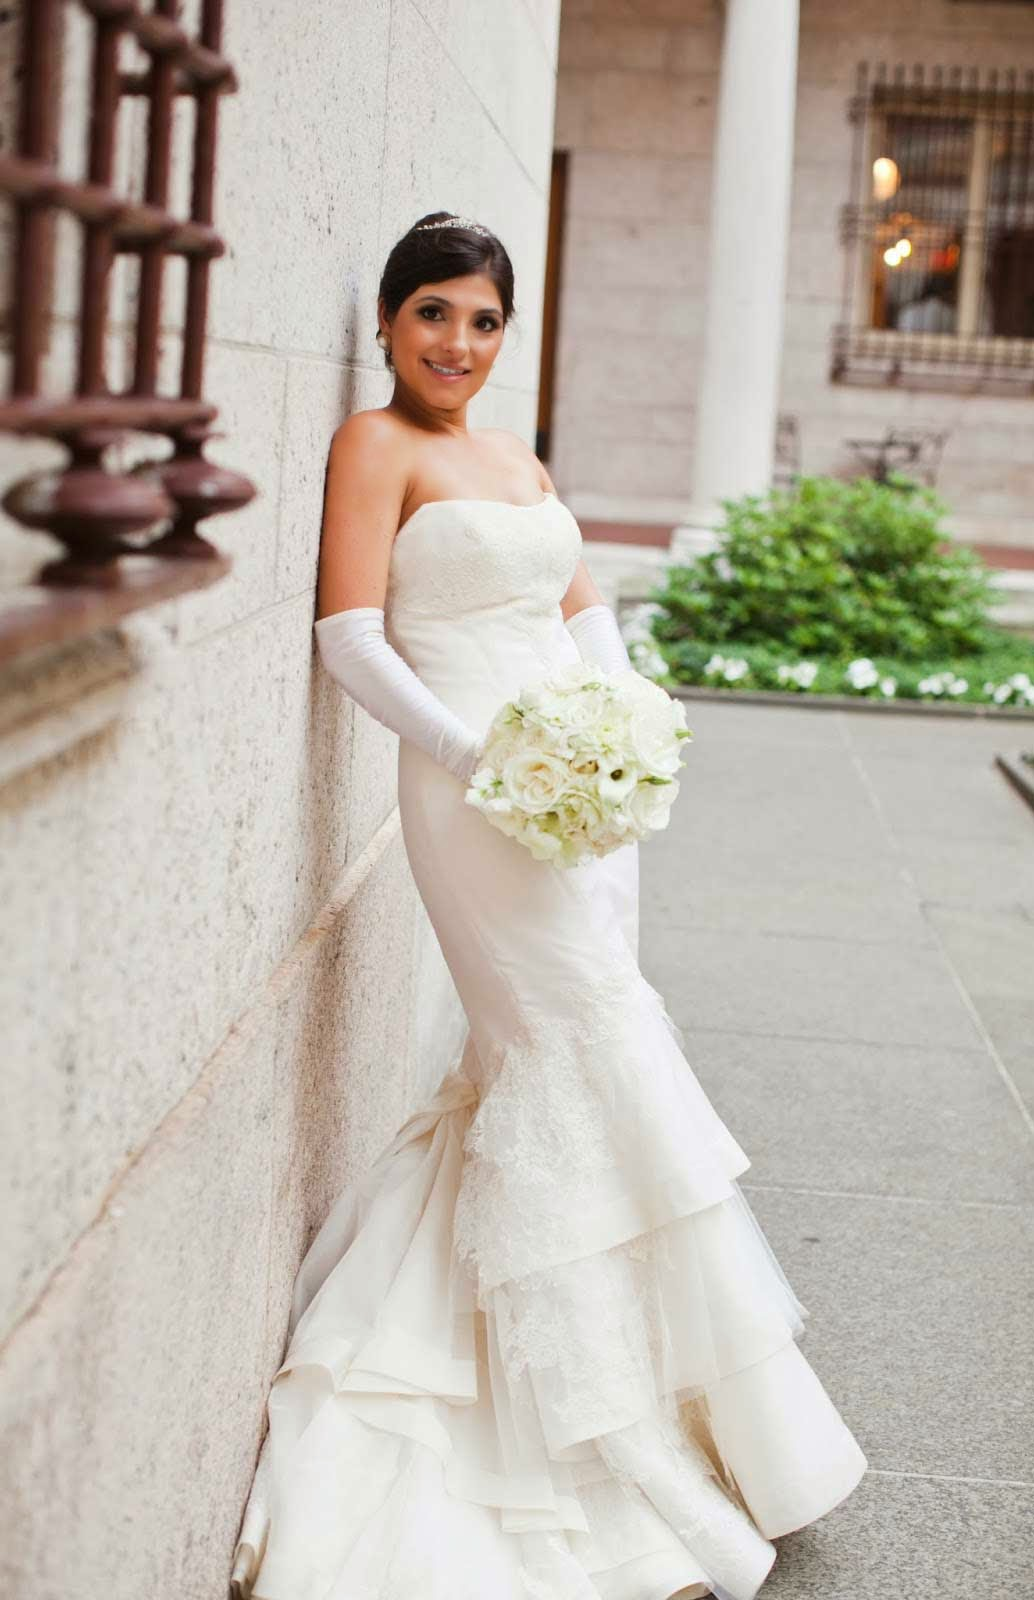 Wedding Dresses For   Second Hand : Second hand plus size white wedding dresses concepts ideas